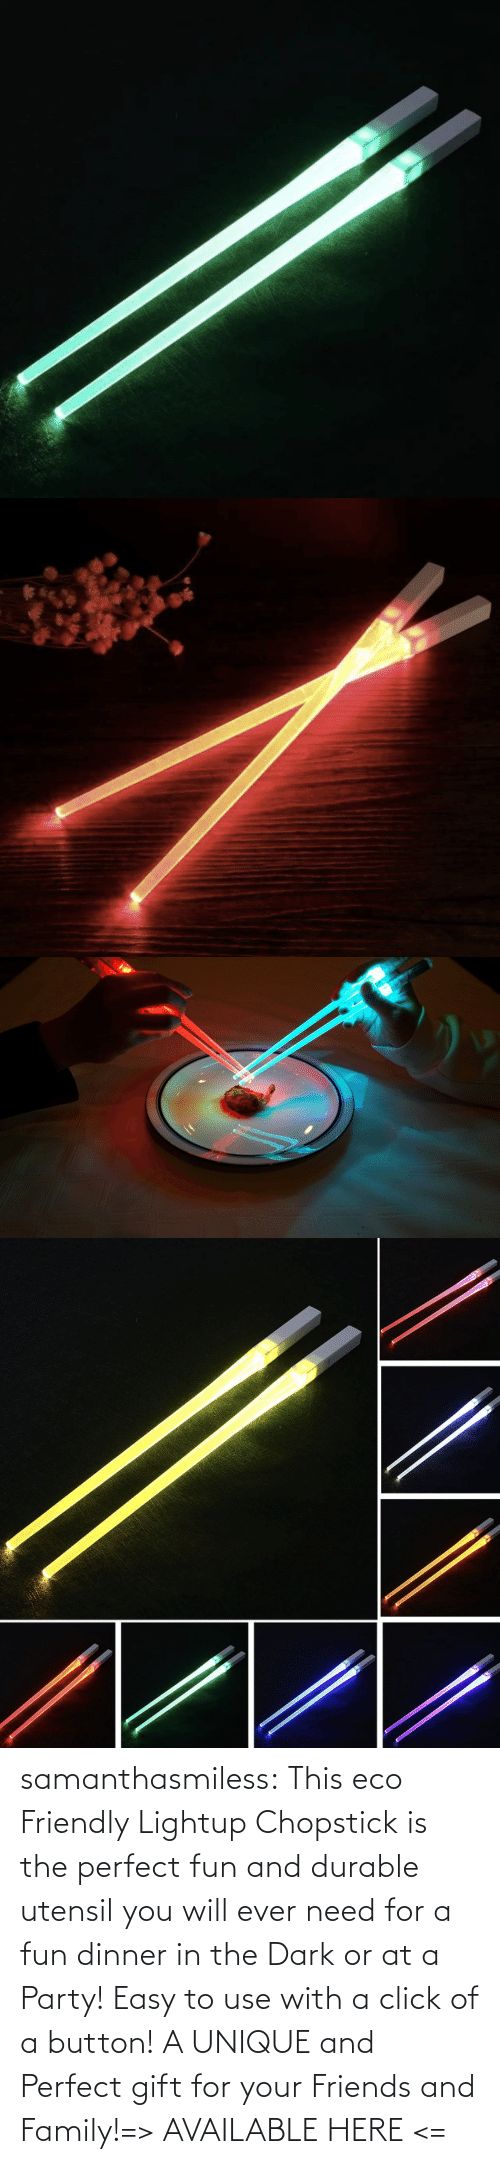 easy: samanthasmiless:  This eco Friendly Lightup Chopstick is the perfect fun and durable utensil you will ever need for a fun dinner in the Dark or at a Party! Easy to use with a click of a button! A UNIQUE and Perfect gift for your Friends and Family!=> AVAILABLE HERE <=